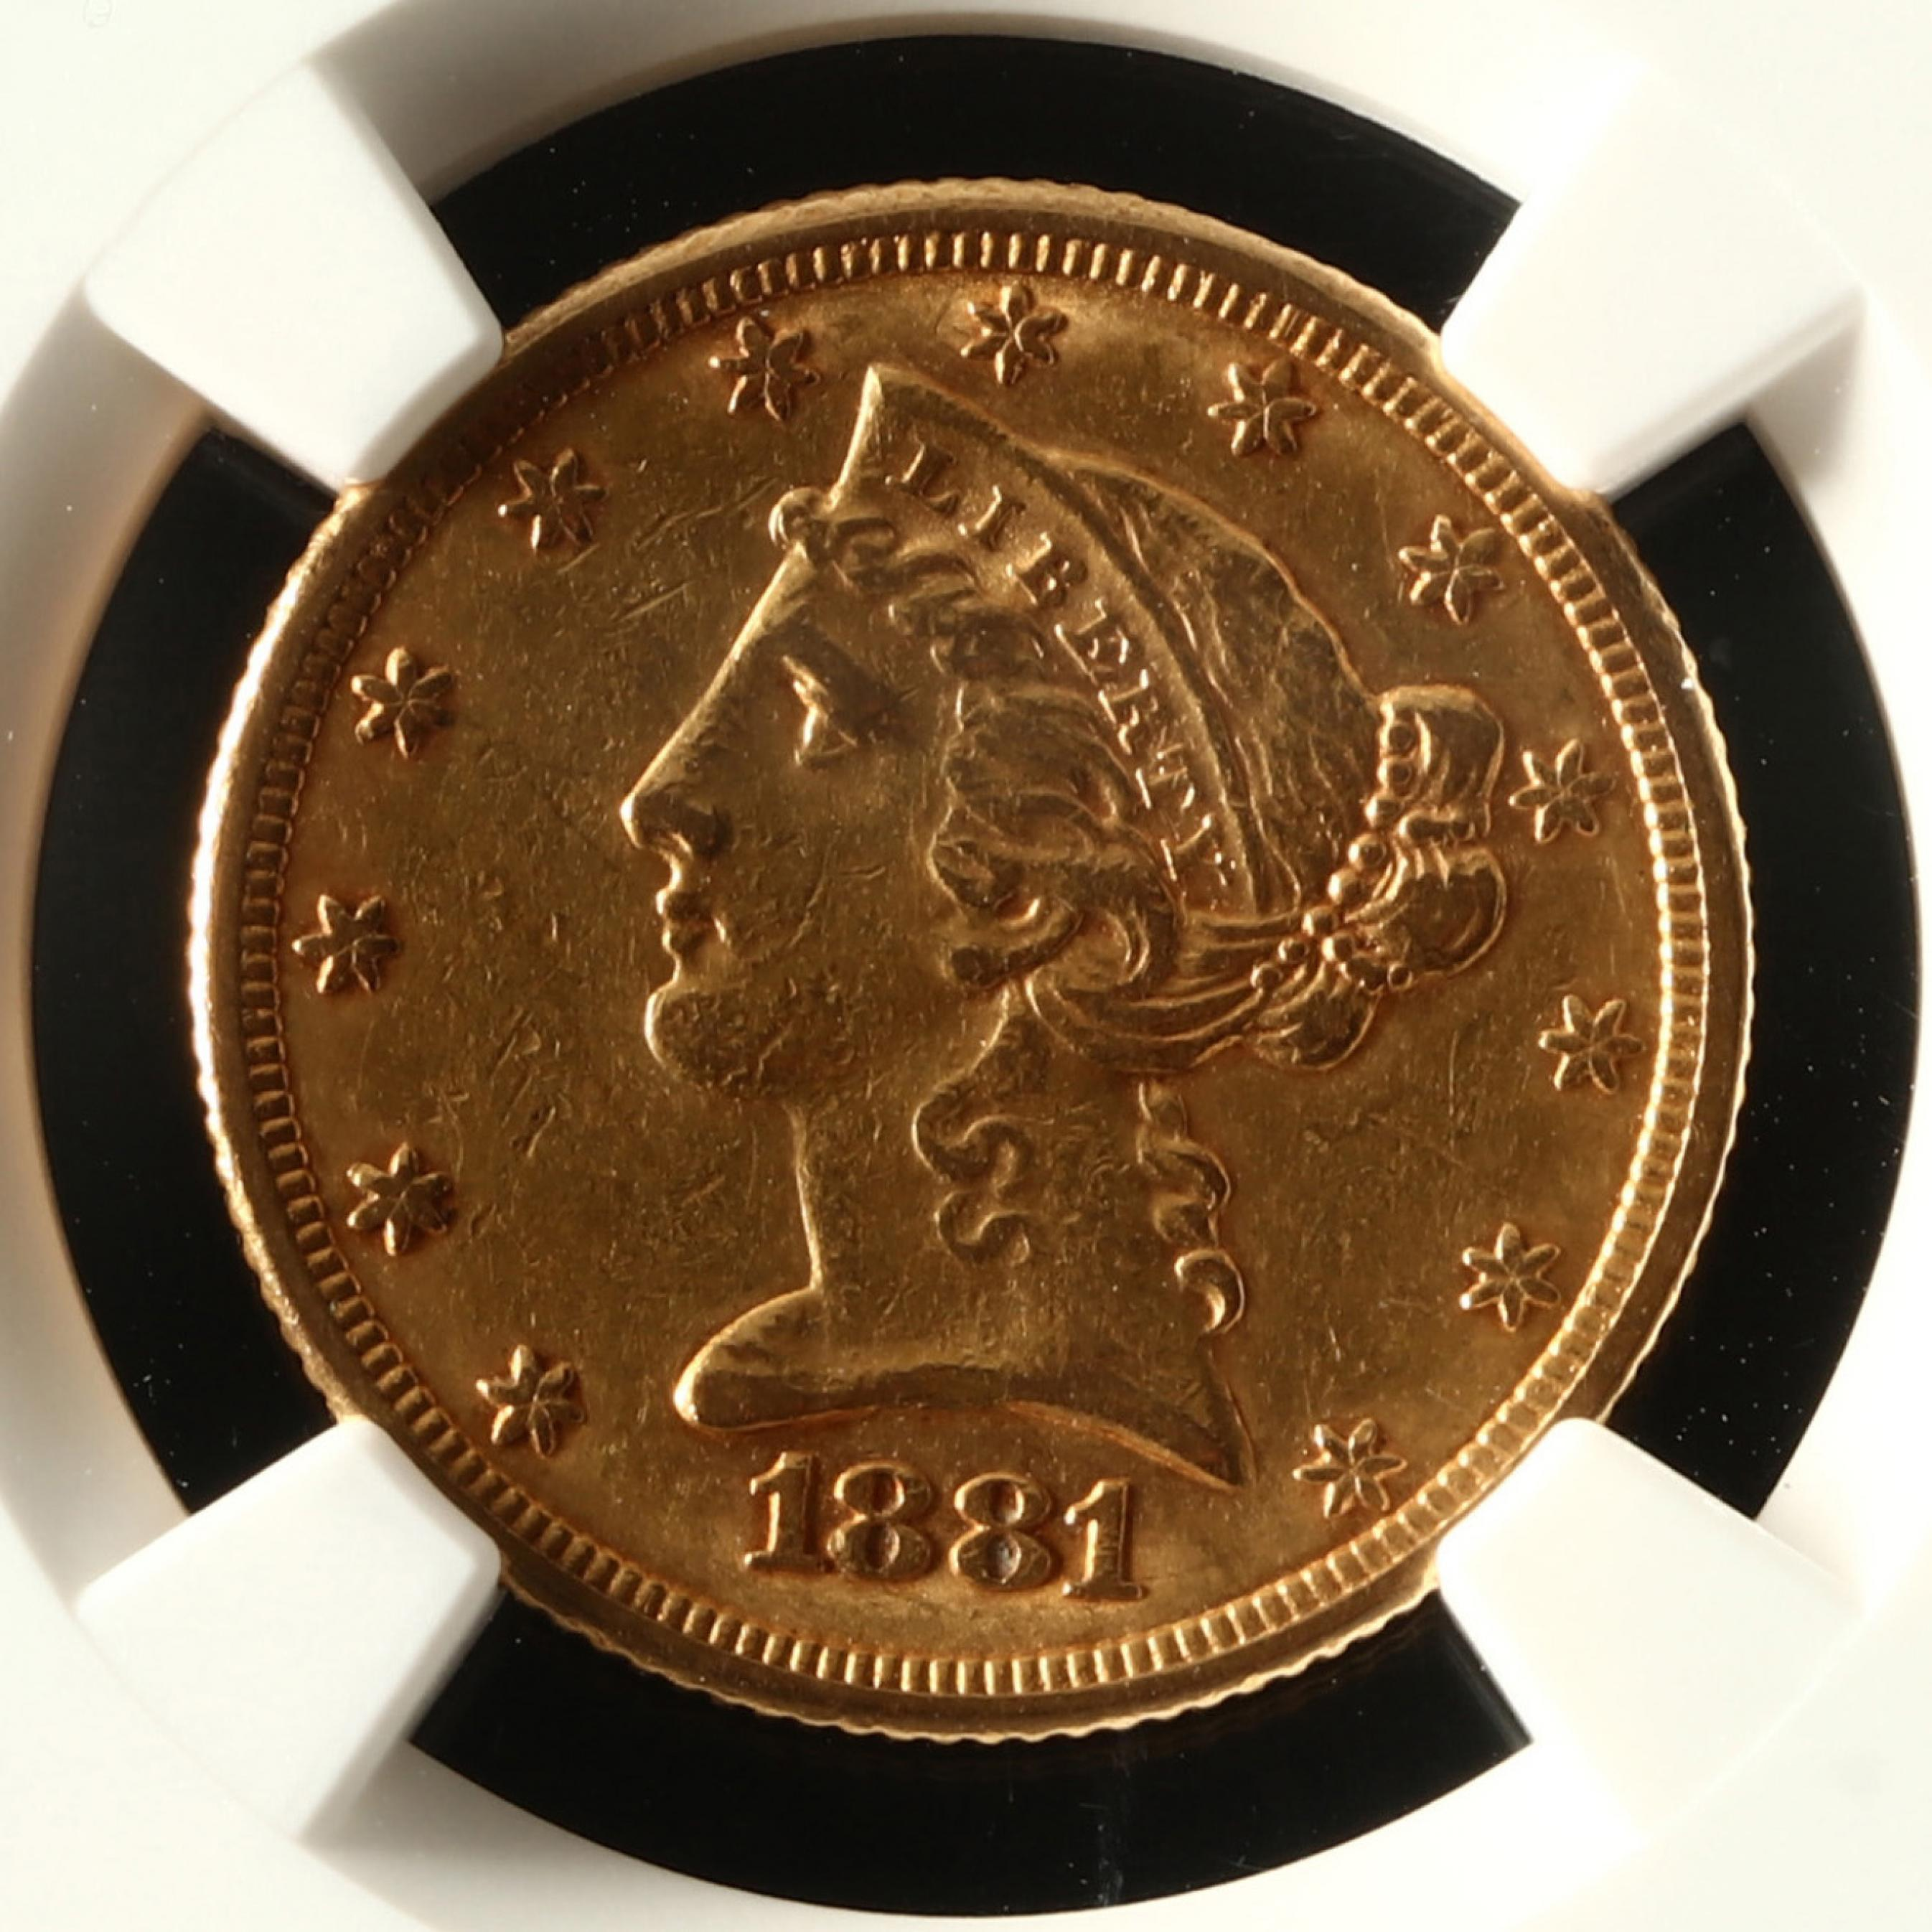 1881-liberty-head-5-gold-half-eagle-ngc-au53